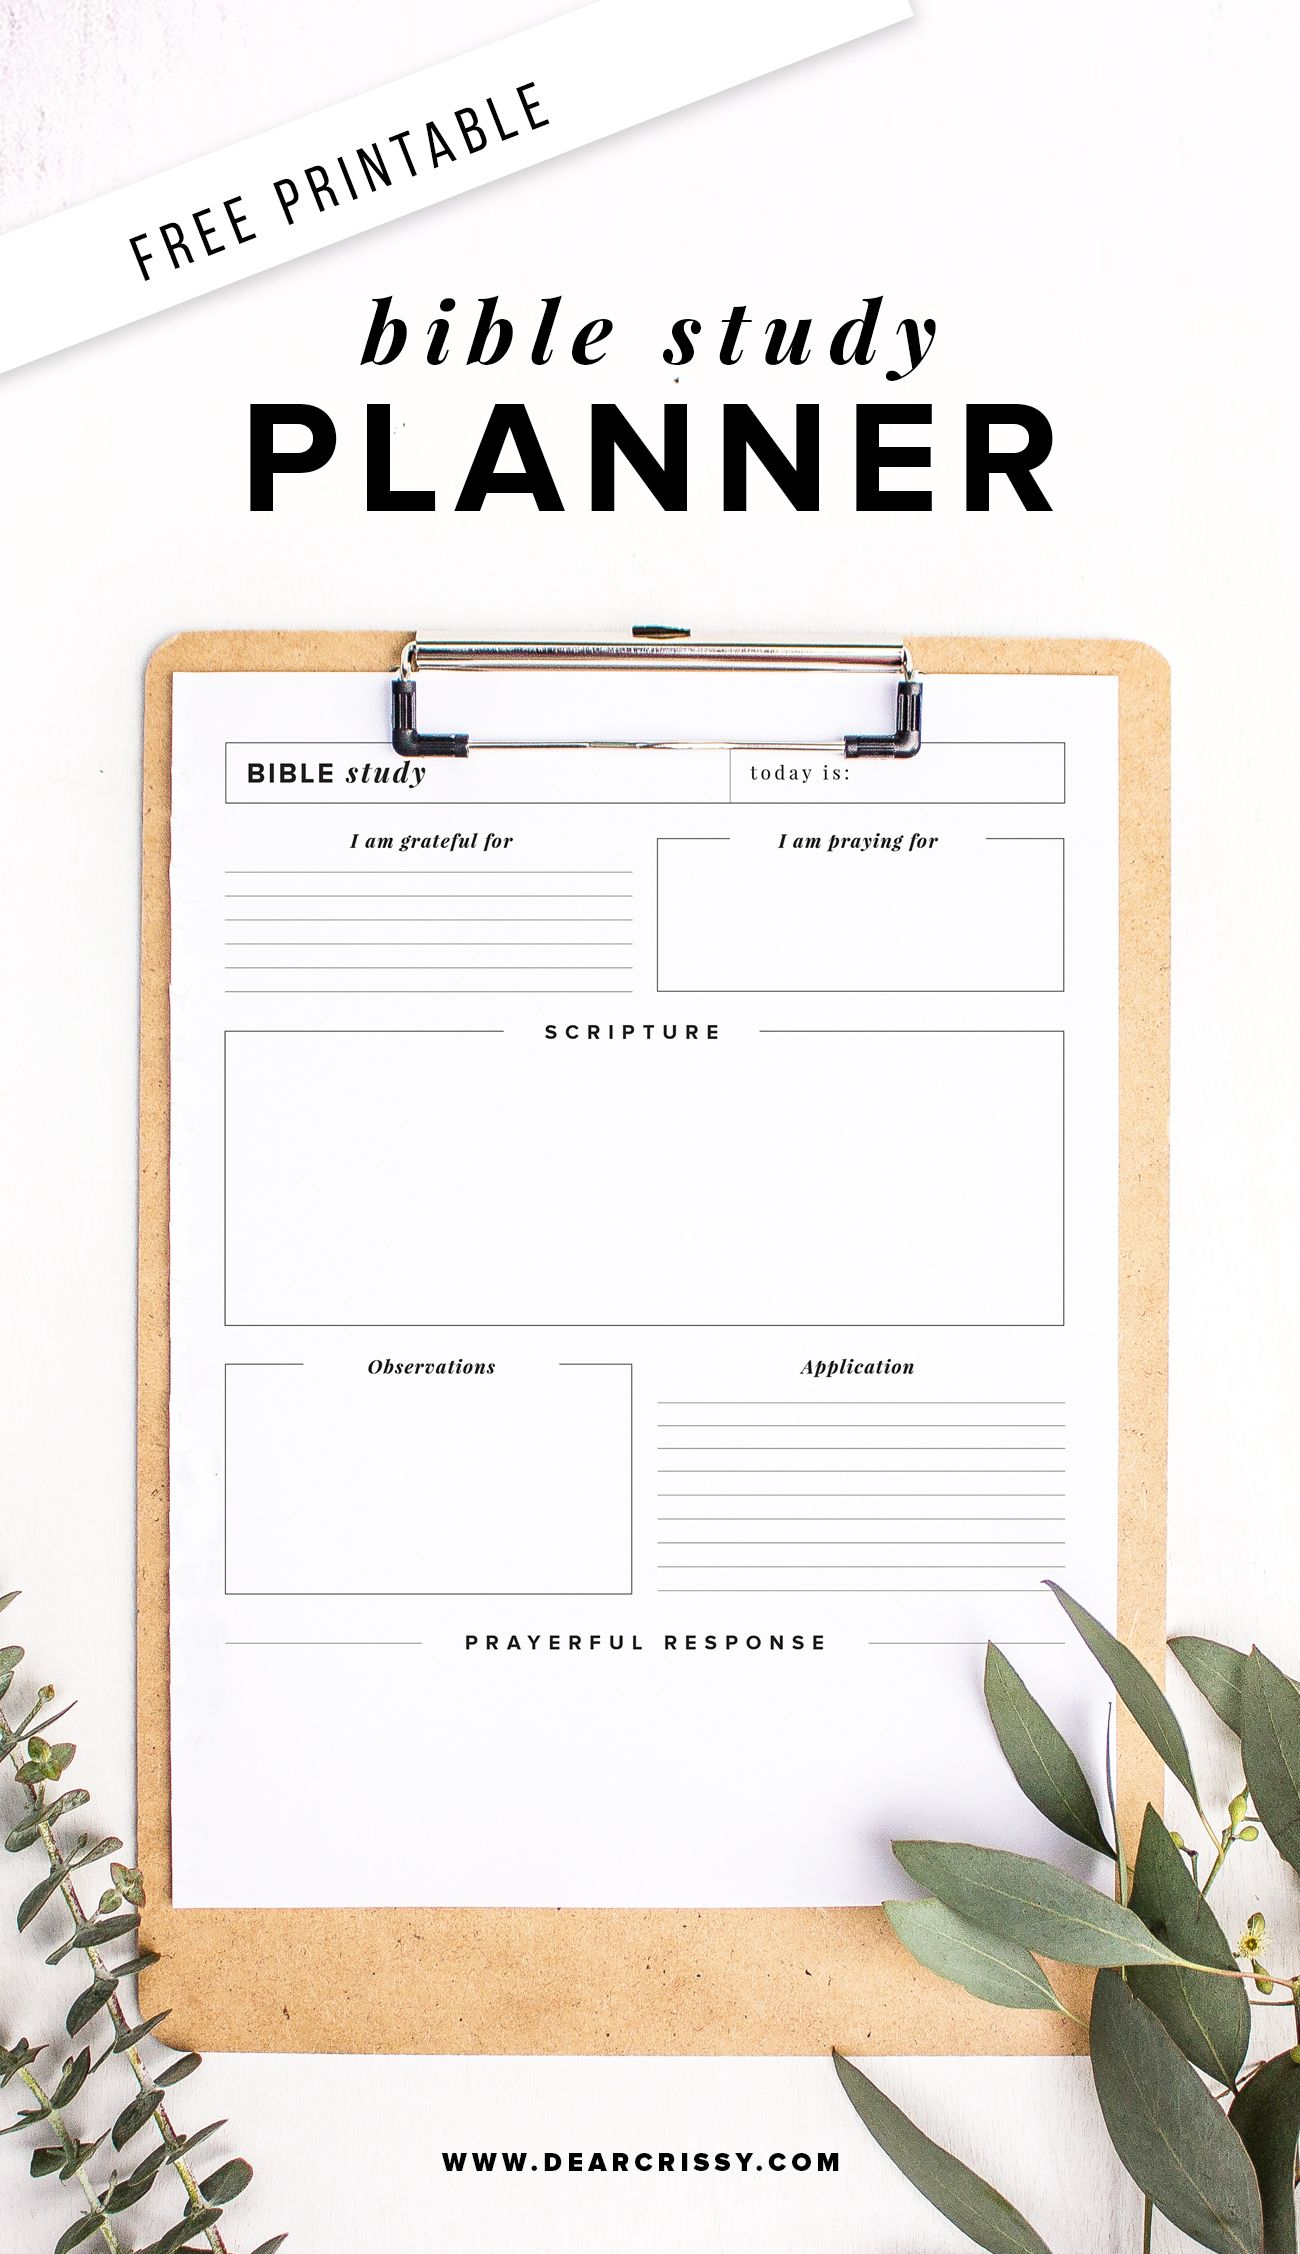 picture regarding Free Printable Bible Study Worksheets named Cost-free Printable Bible Review Planner - Cleaning soap Solution Bible Investigate